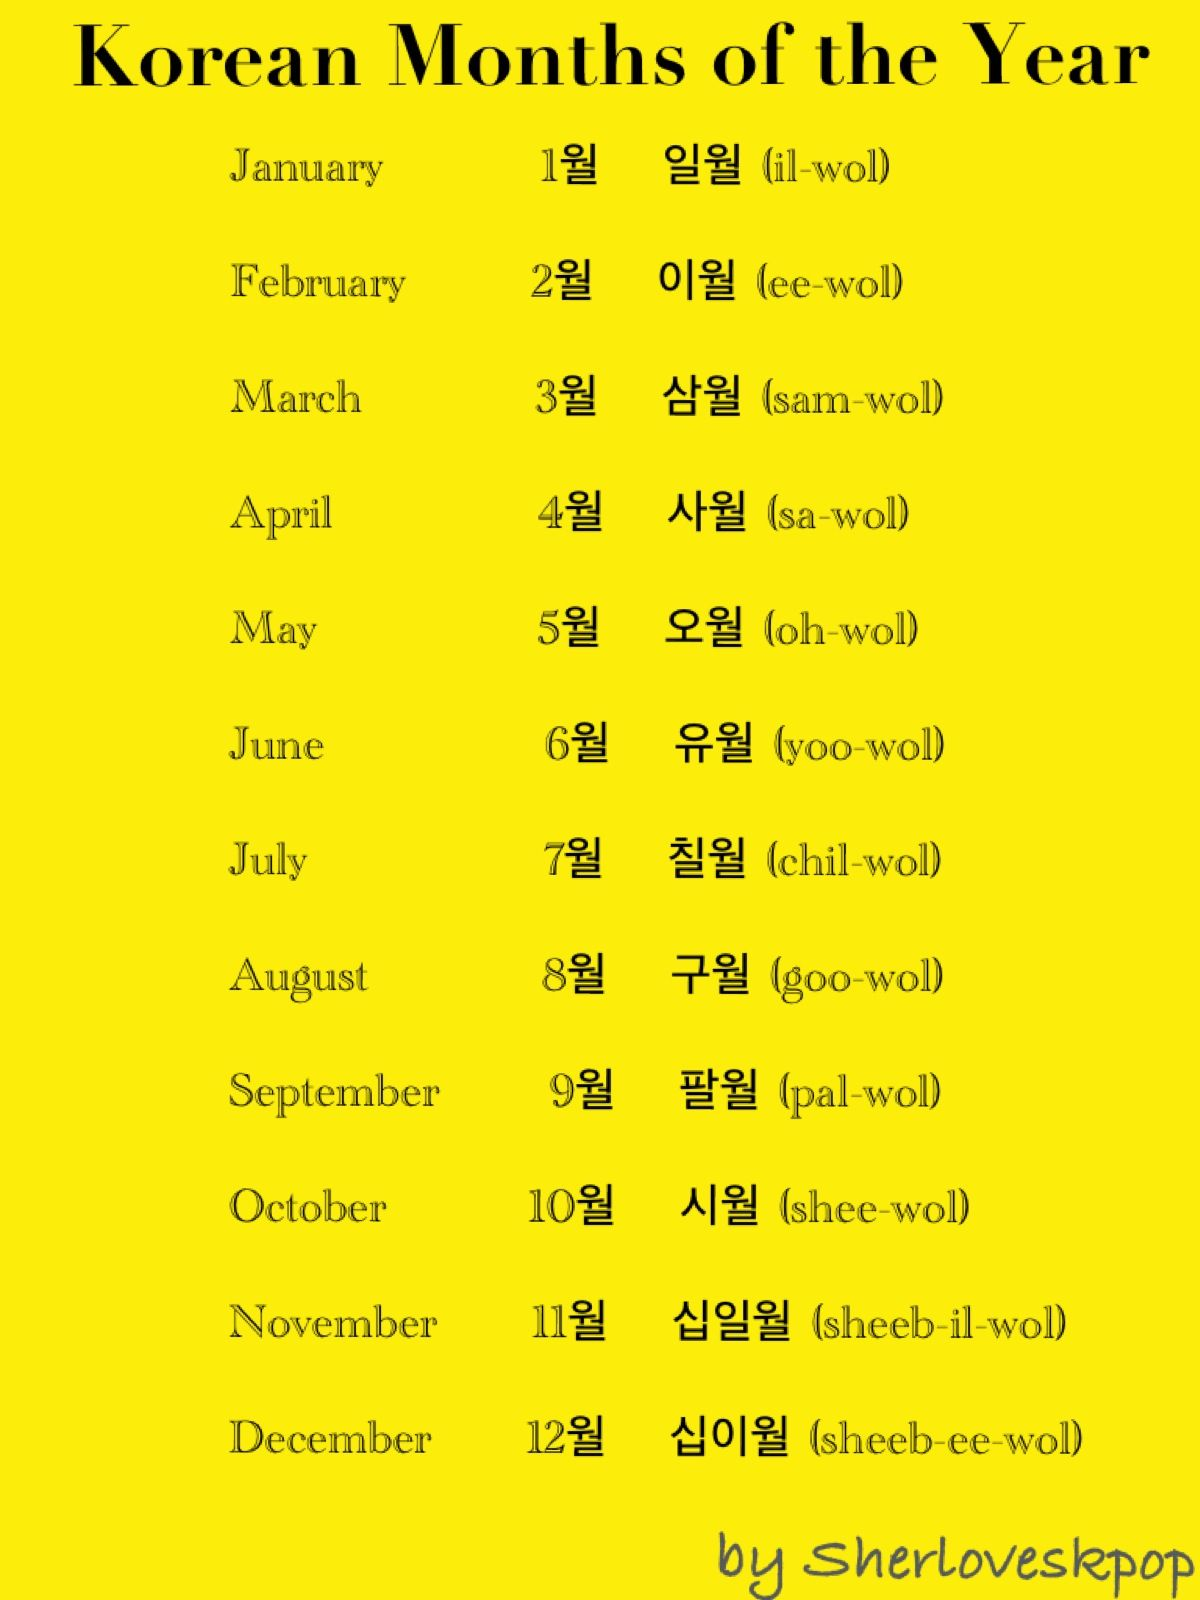 Korean months of the year i didnt realize it was this